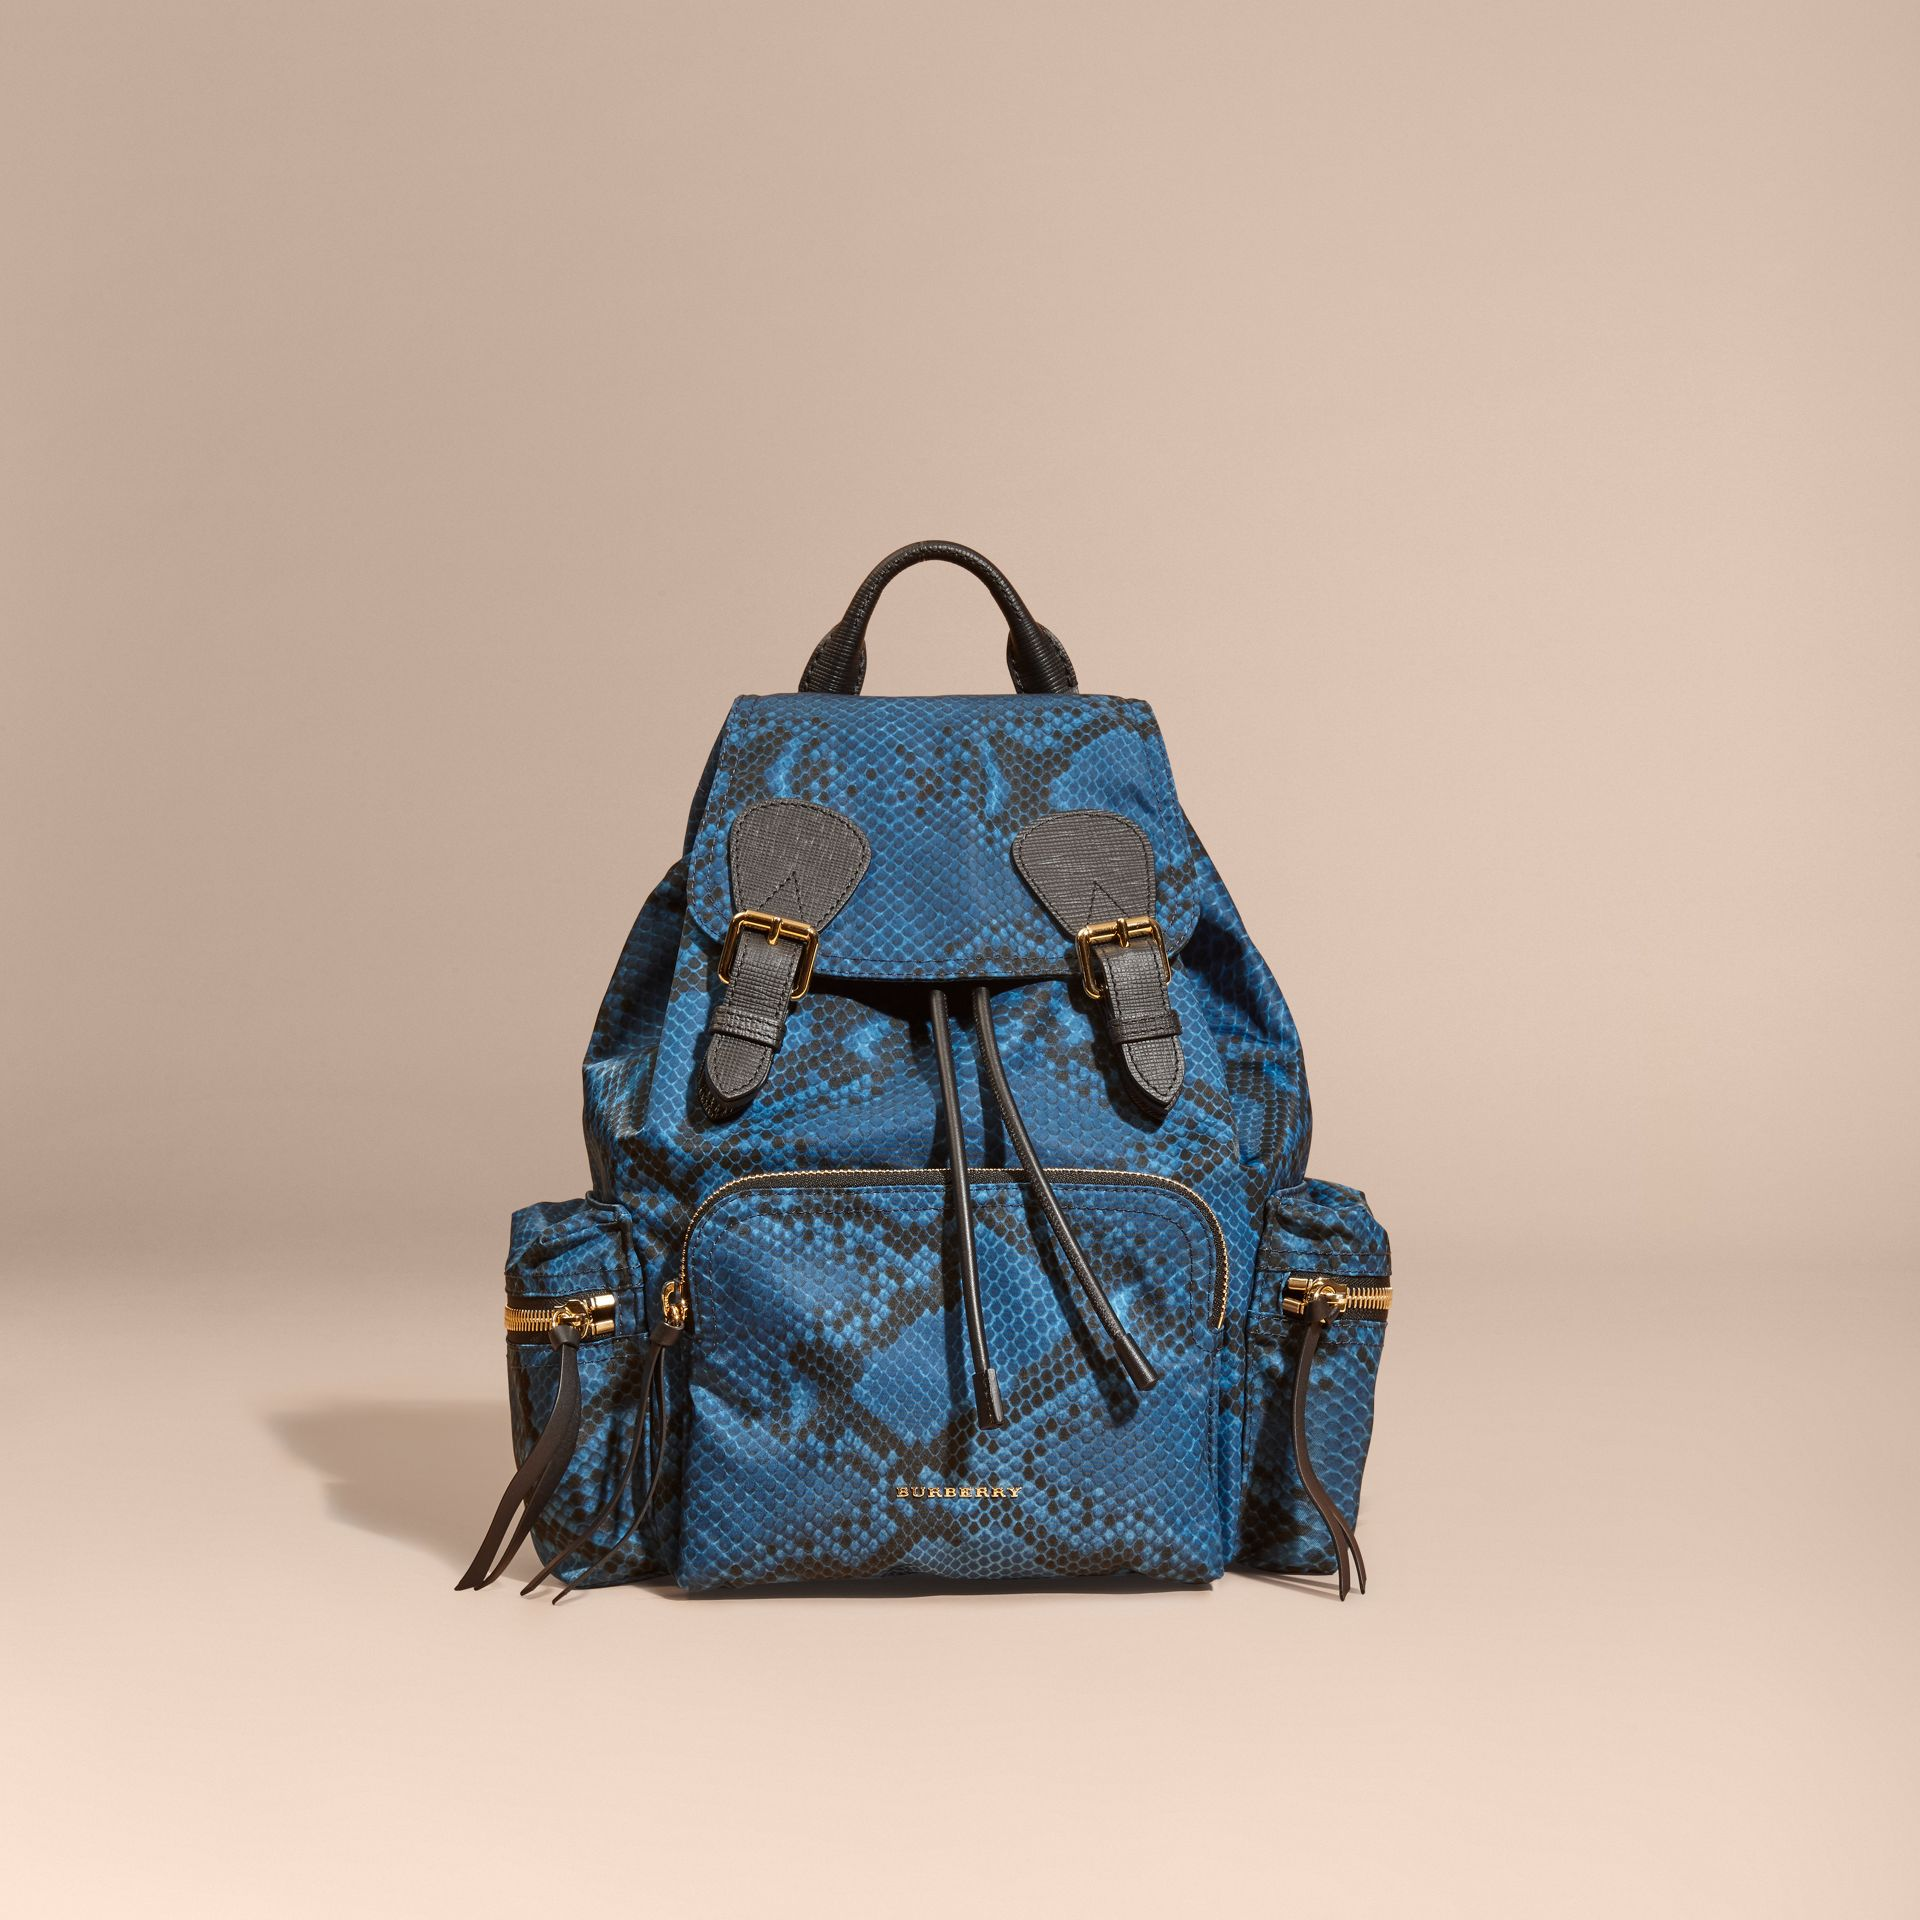 Blue The Medium Rucksack in Python Print Nylon and Leather Blue - gallery image 8